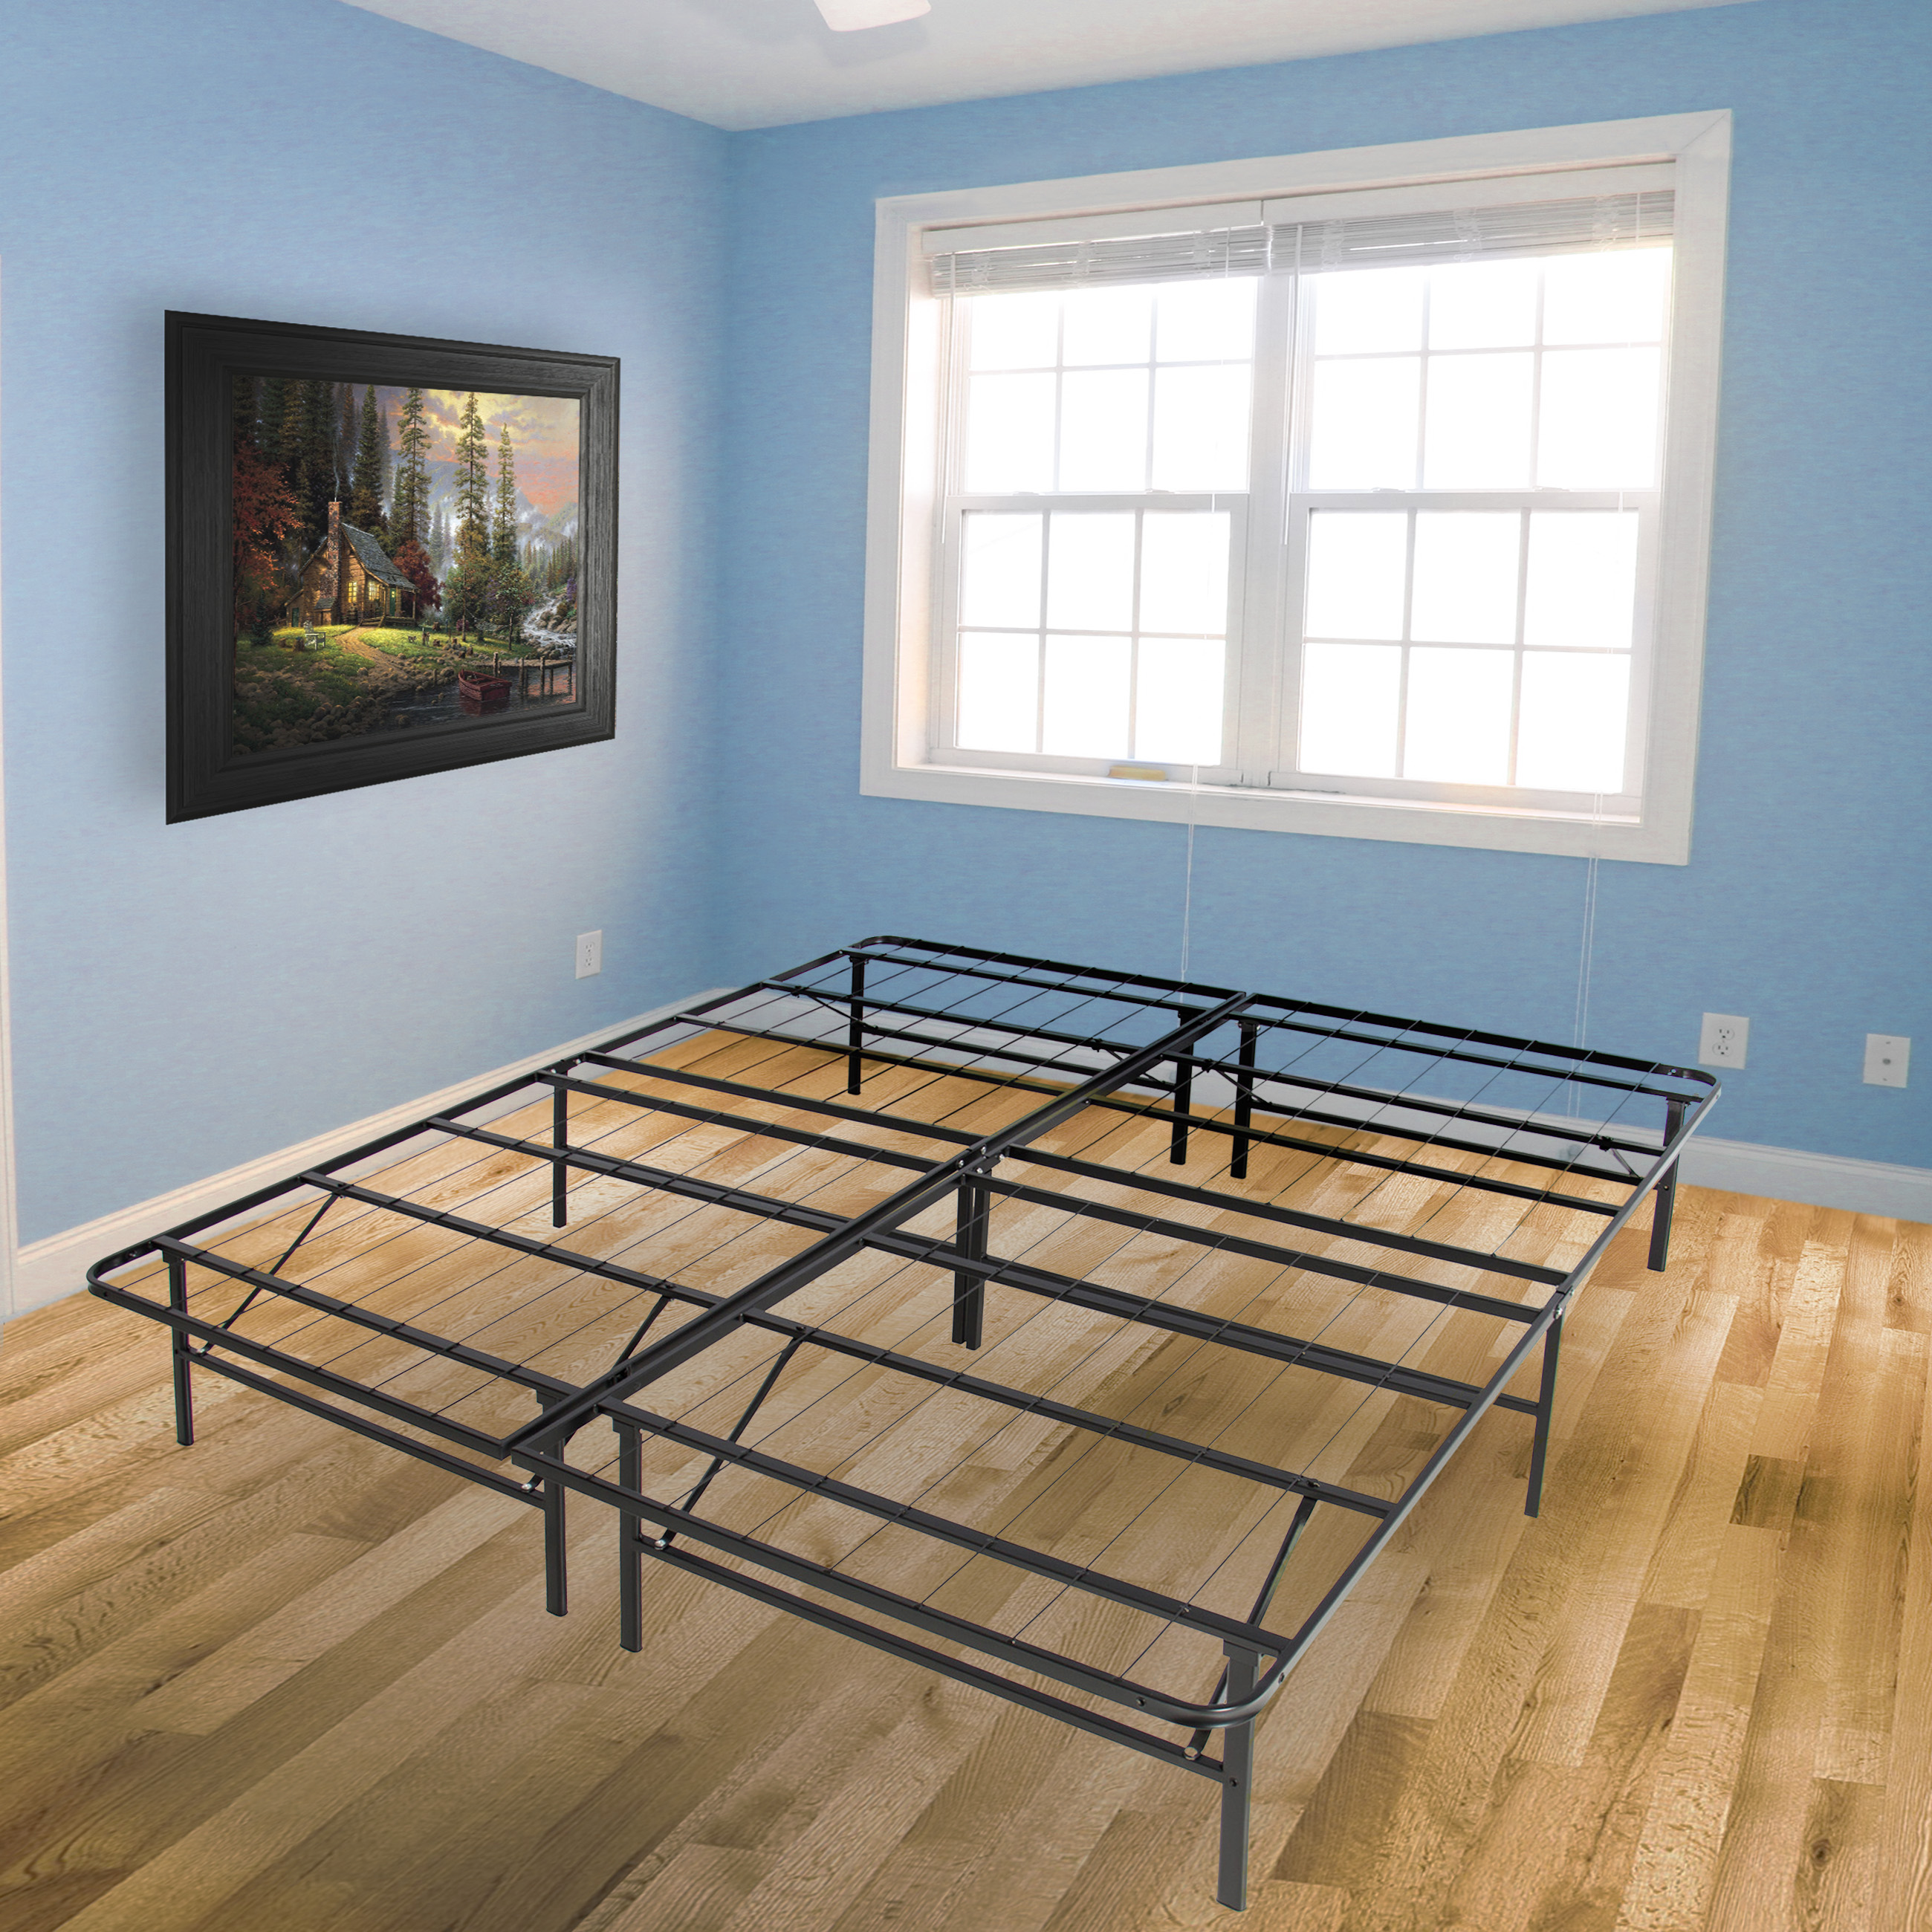 Best Choice Products Platform Metal Bed Frame Foldable No Box Spring ...